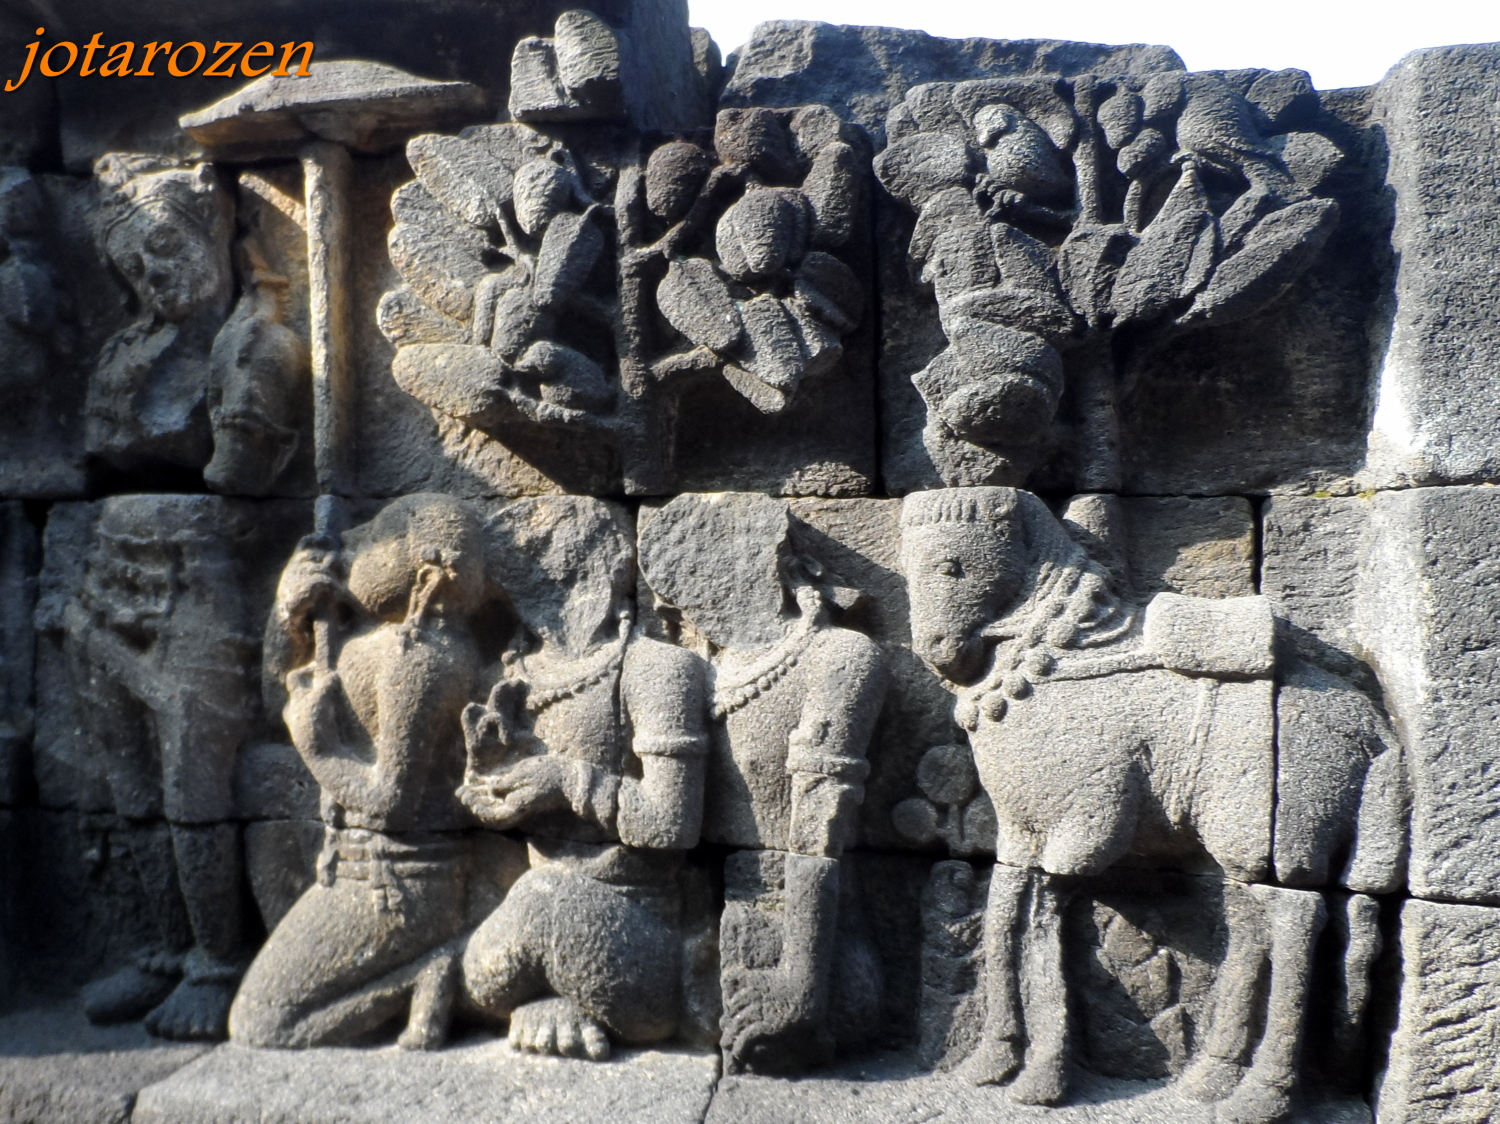 Footsteps jotaro s travels sites borobudur